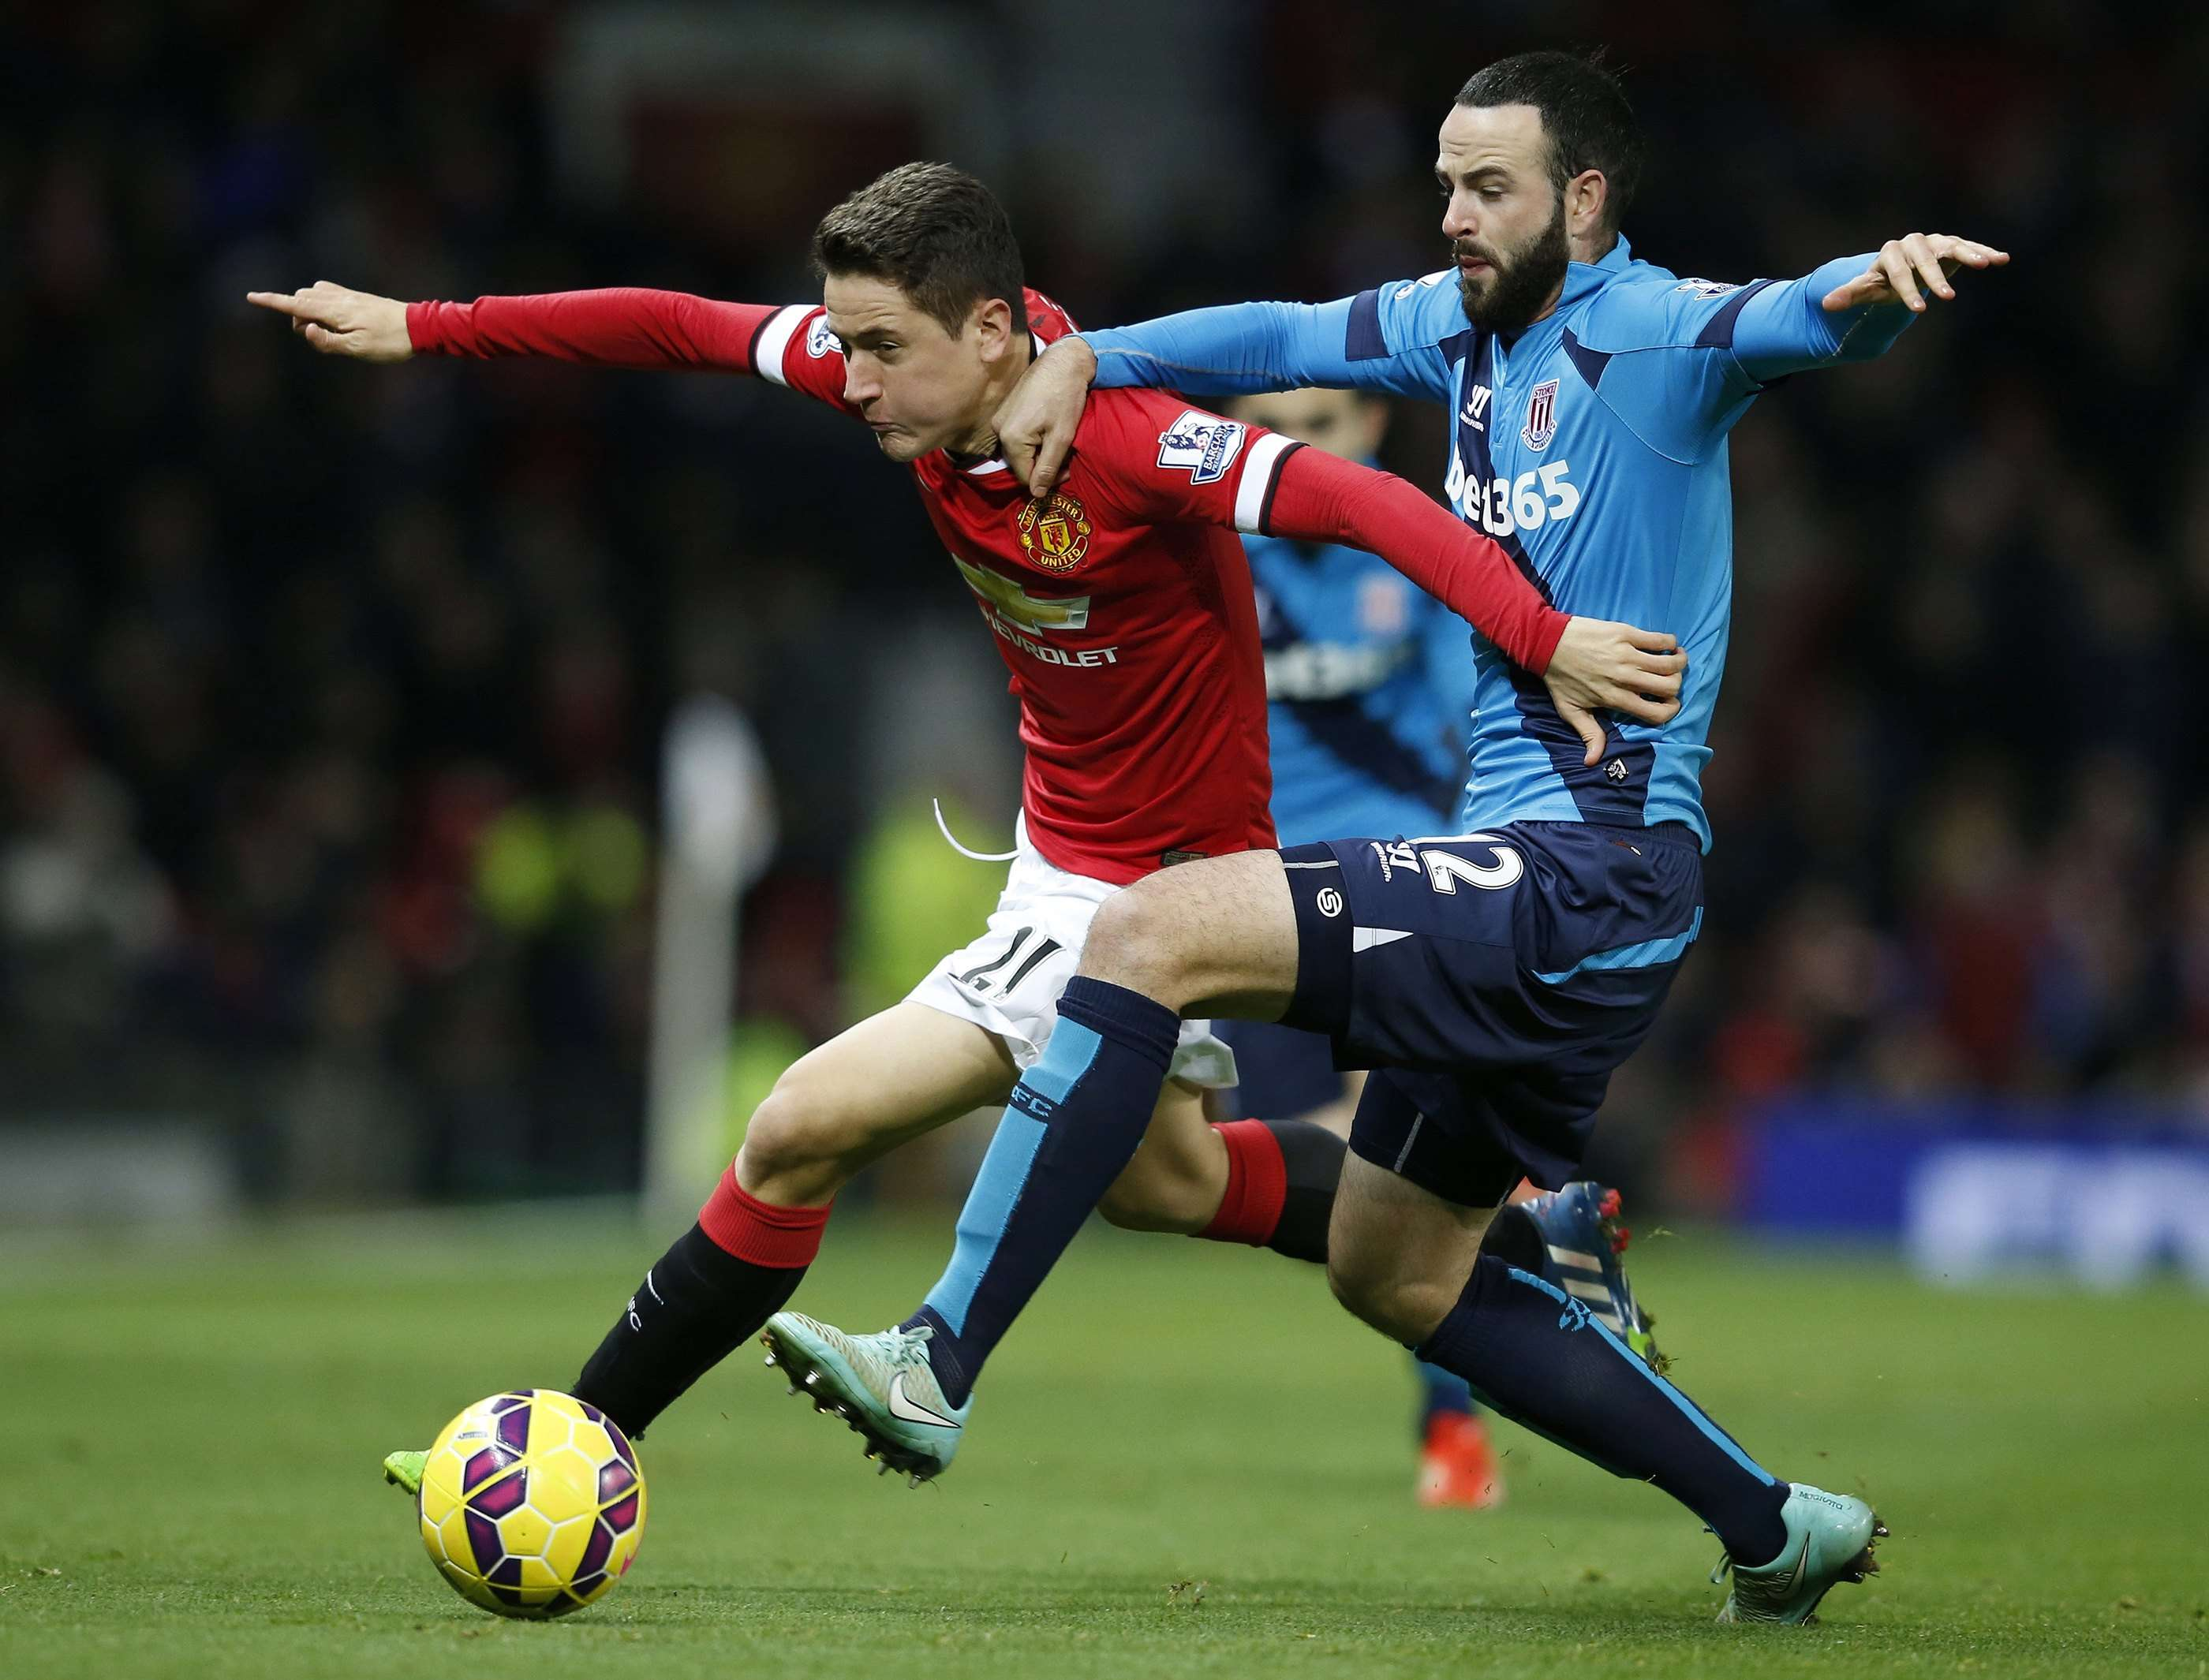 "Manchester United's Ander Herrera (L) is challenged by Stoke City's Marc Wilson during their English Premier League soccer match at Old Trafford in Manchester, northern England December 2, 2014. REUTERS/Phil Noble (BRITAIN - Tags: SPORT SOCCER) NO USE WITH UNAUTHORIZED AUDIO, VIDEO, DATA, FIXTURE LISTS, CLUB/LEAGUE LOGOS OR ""LIVE"" SERVICES. ONLINE IN-MATCH USE LIMITED TO 45 IMAGES, NO VIDEO EMULATION. NO USE IN BETTING, GAMES OR SINGLE CLUB/LEAGUE/PLAYER PUBLICATIONS. FOR EDITORIAL USE ONLY. NOT FOR SALE FOR MARKETING OR ADVERTISING CAMPAIGNS Foto: PHIL NOBLE/REUTERS"